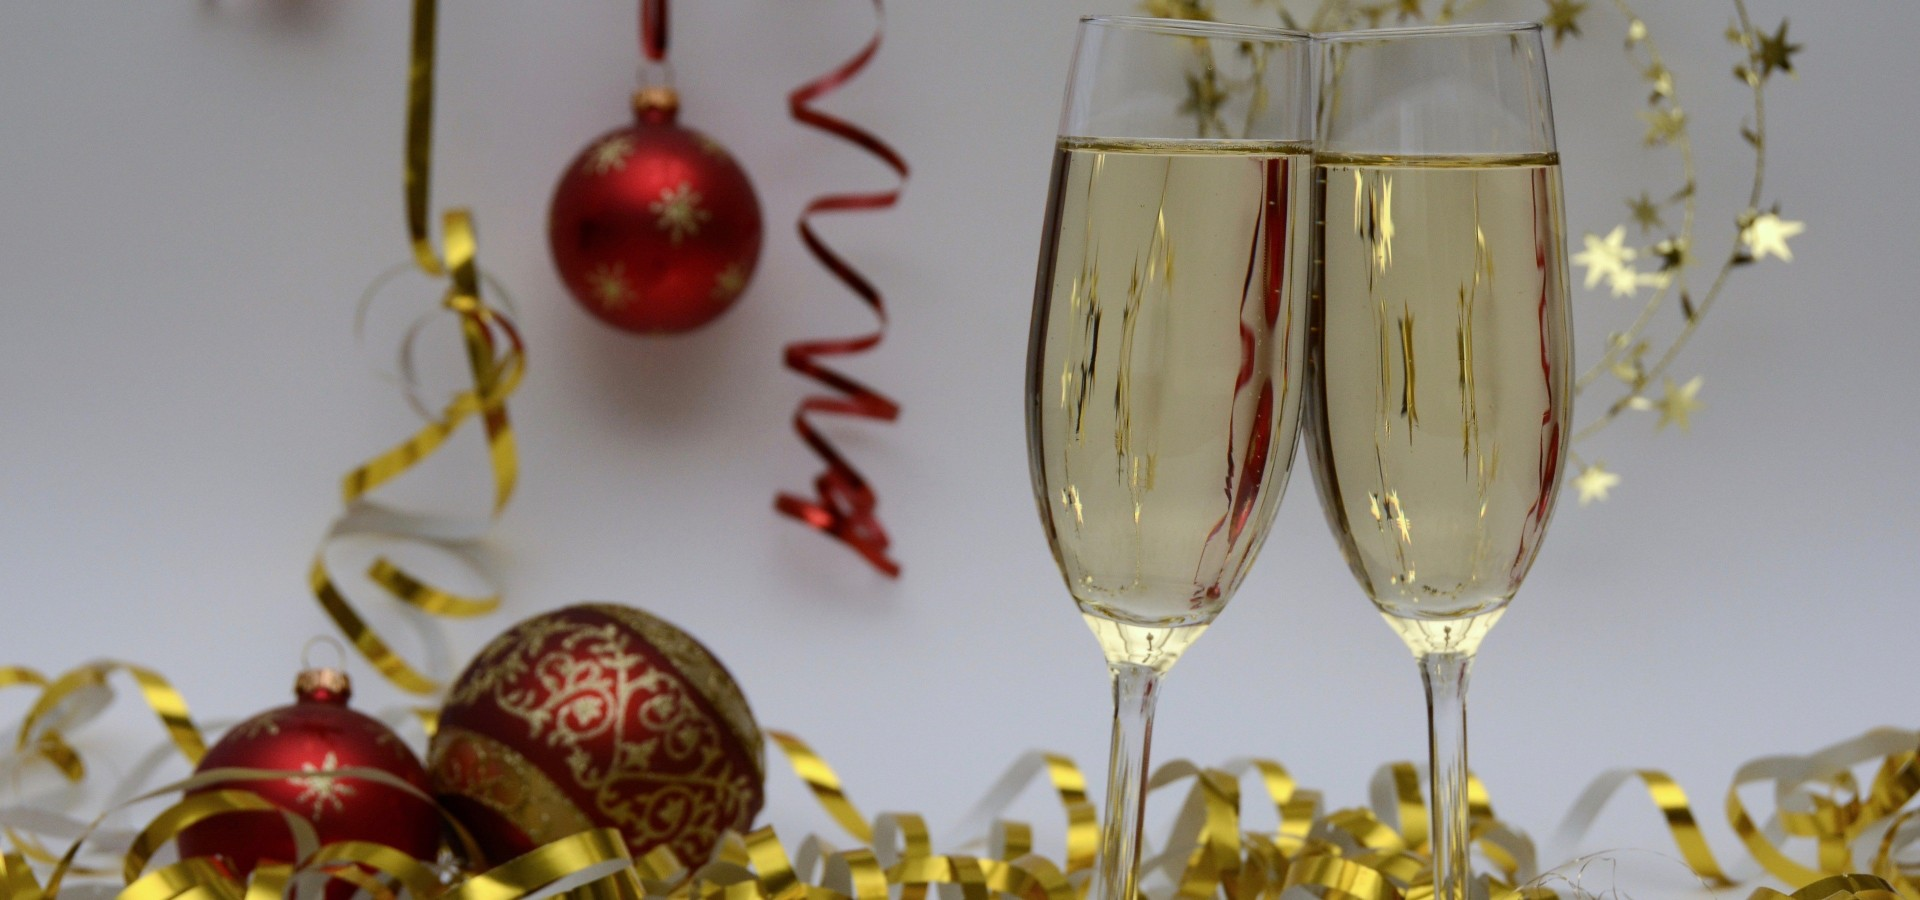 Celebrate New Year's Eve at GamberoRosso!